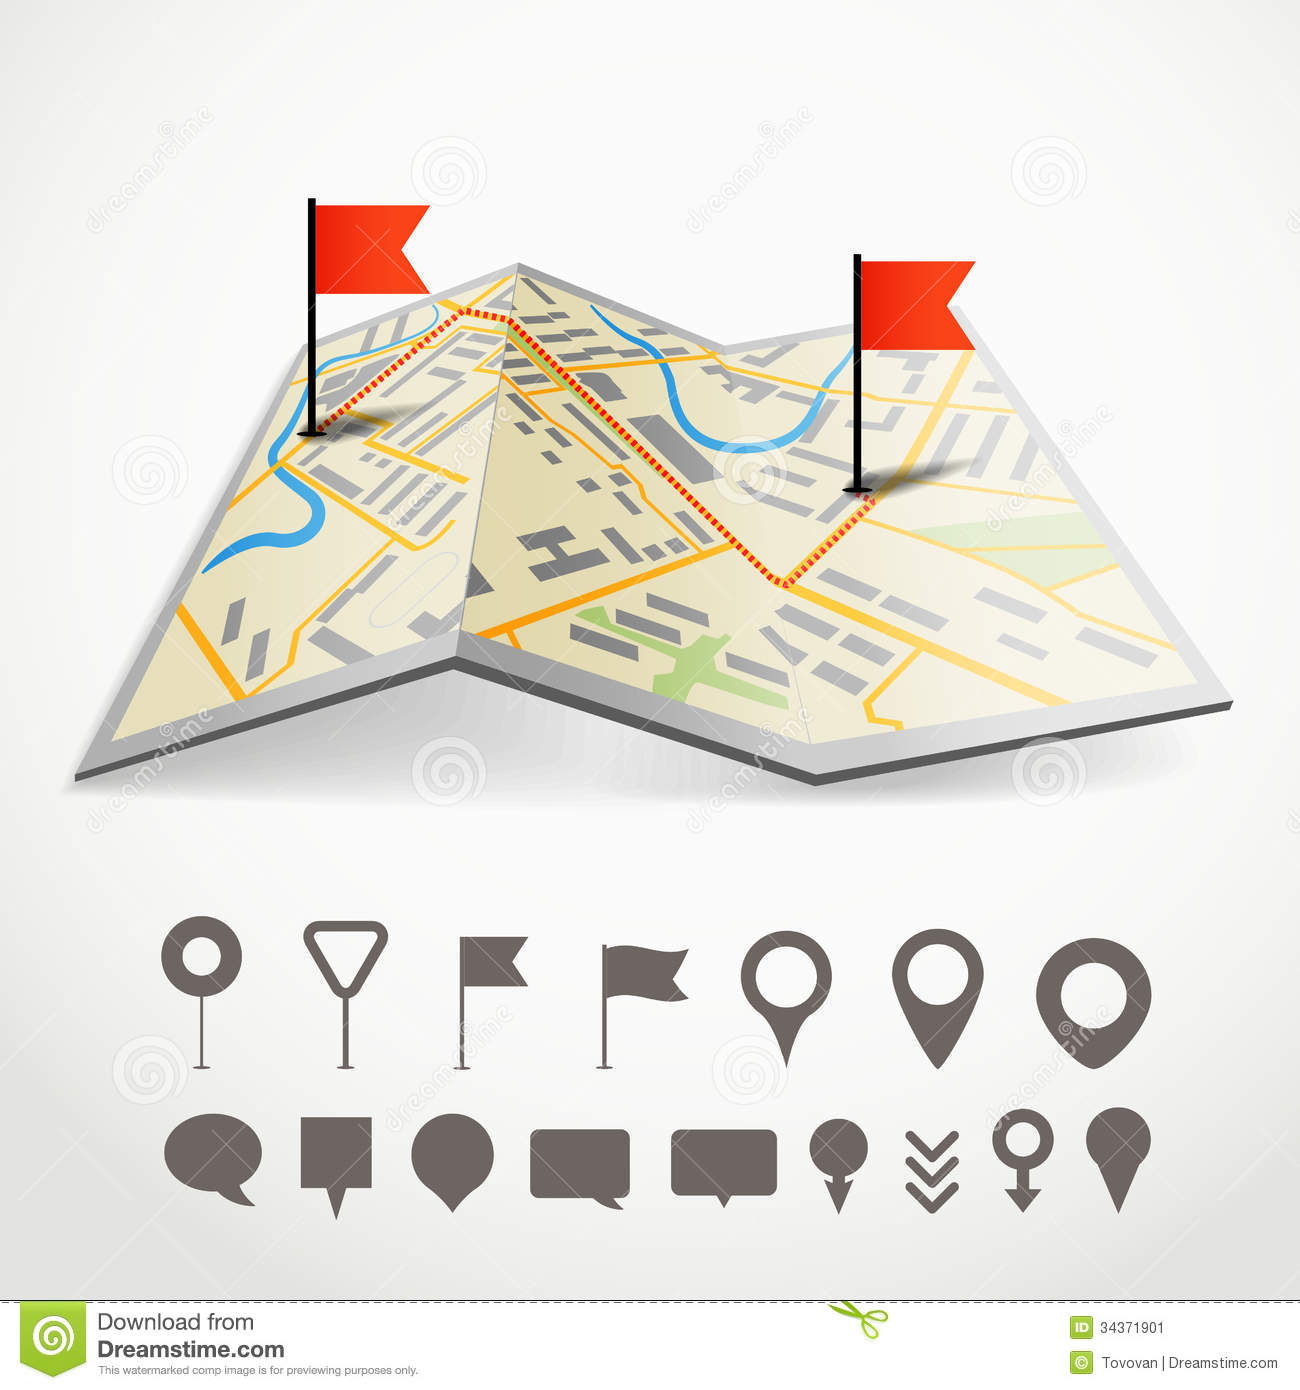 Folded road map clipart clip transparent download Folded Abstract City Map Stock Image - Image: 34371901 clip transparent download